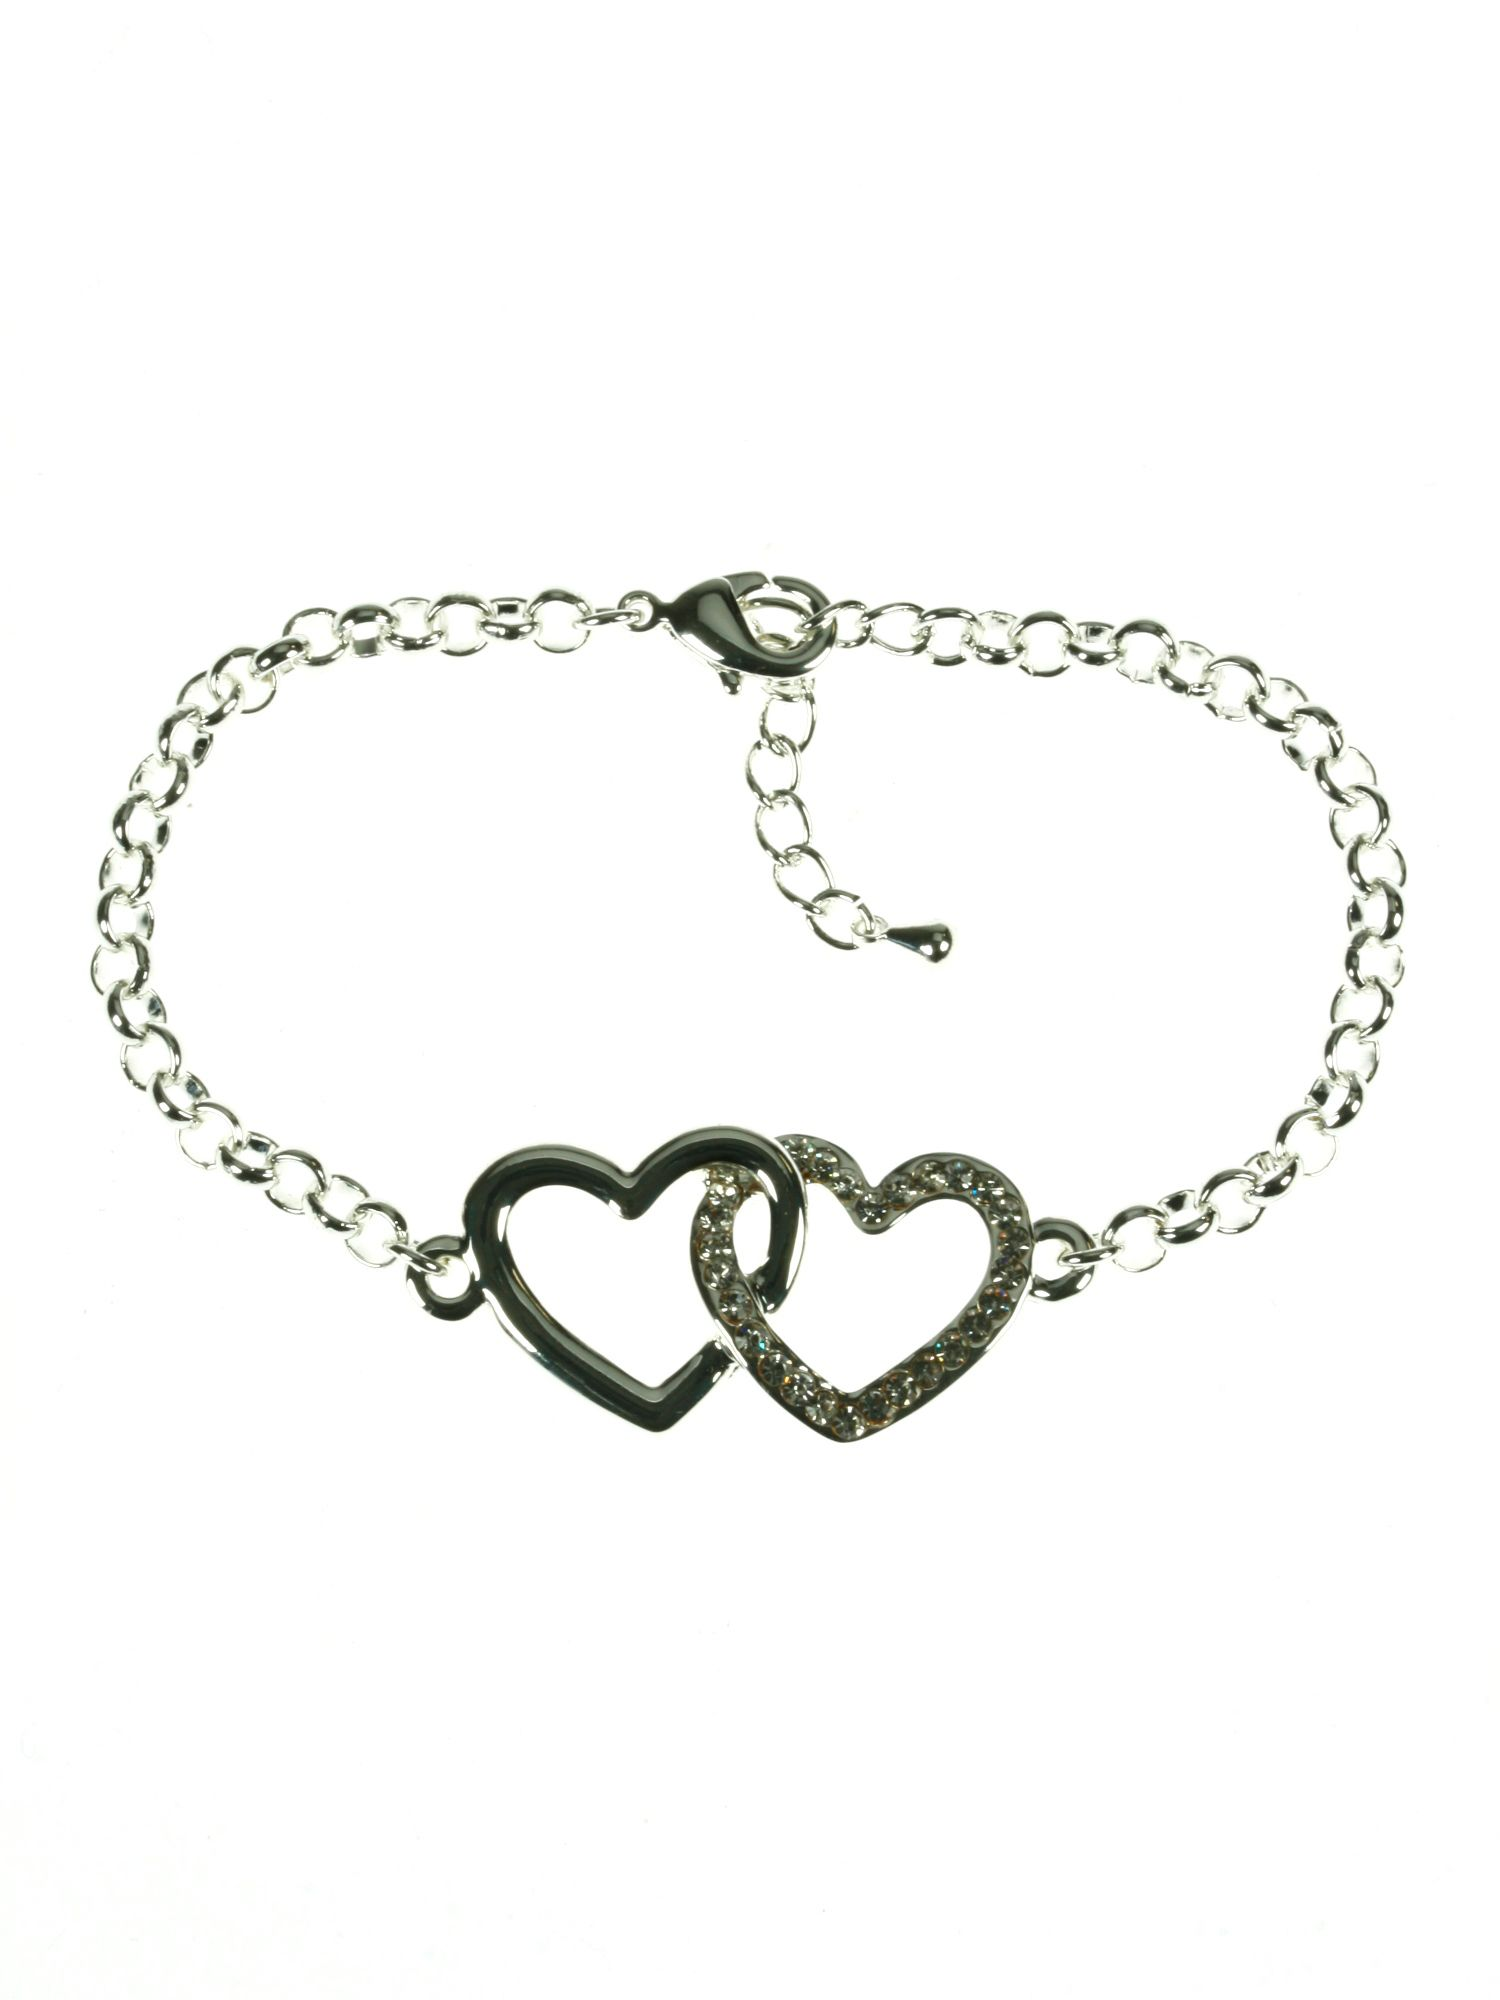 Silver plated entwined hearts chain bracelet